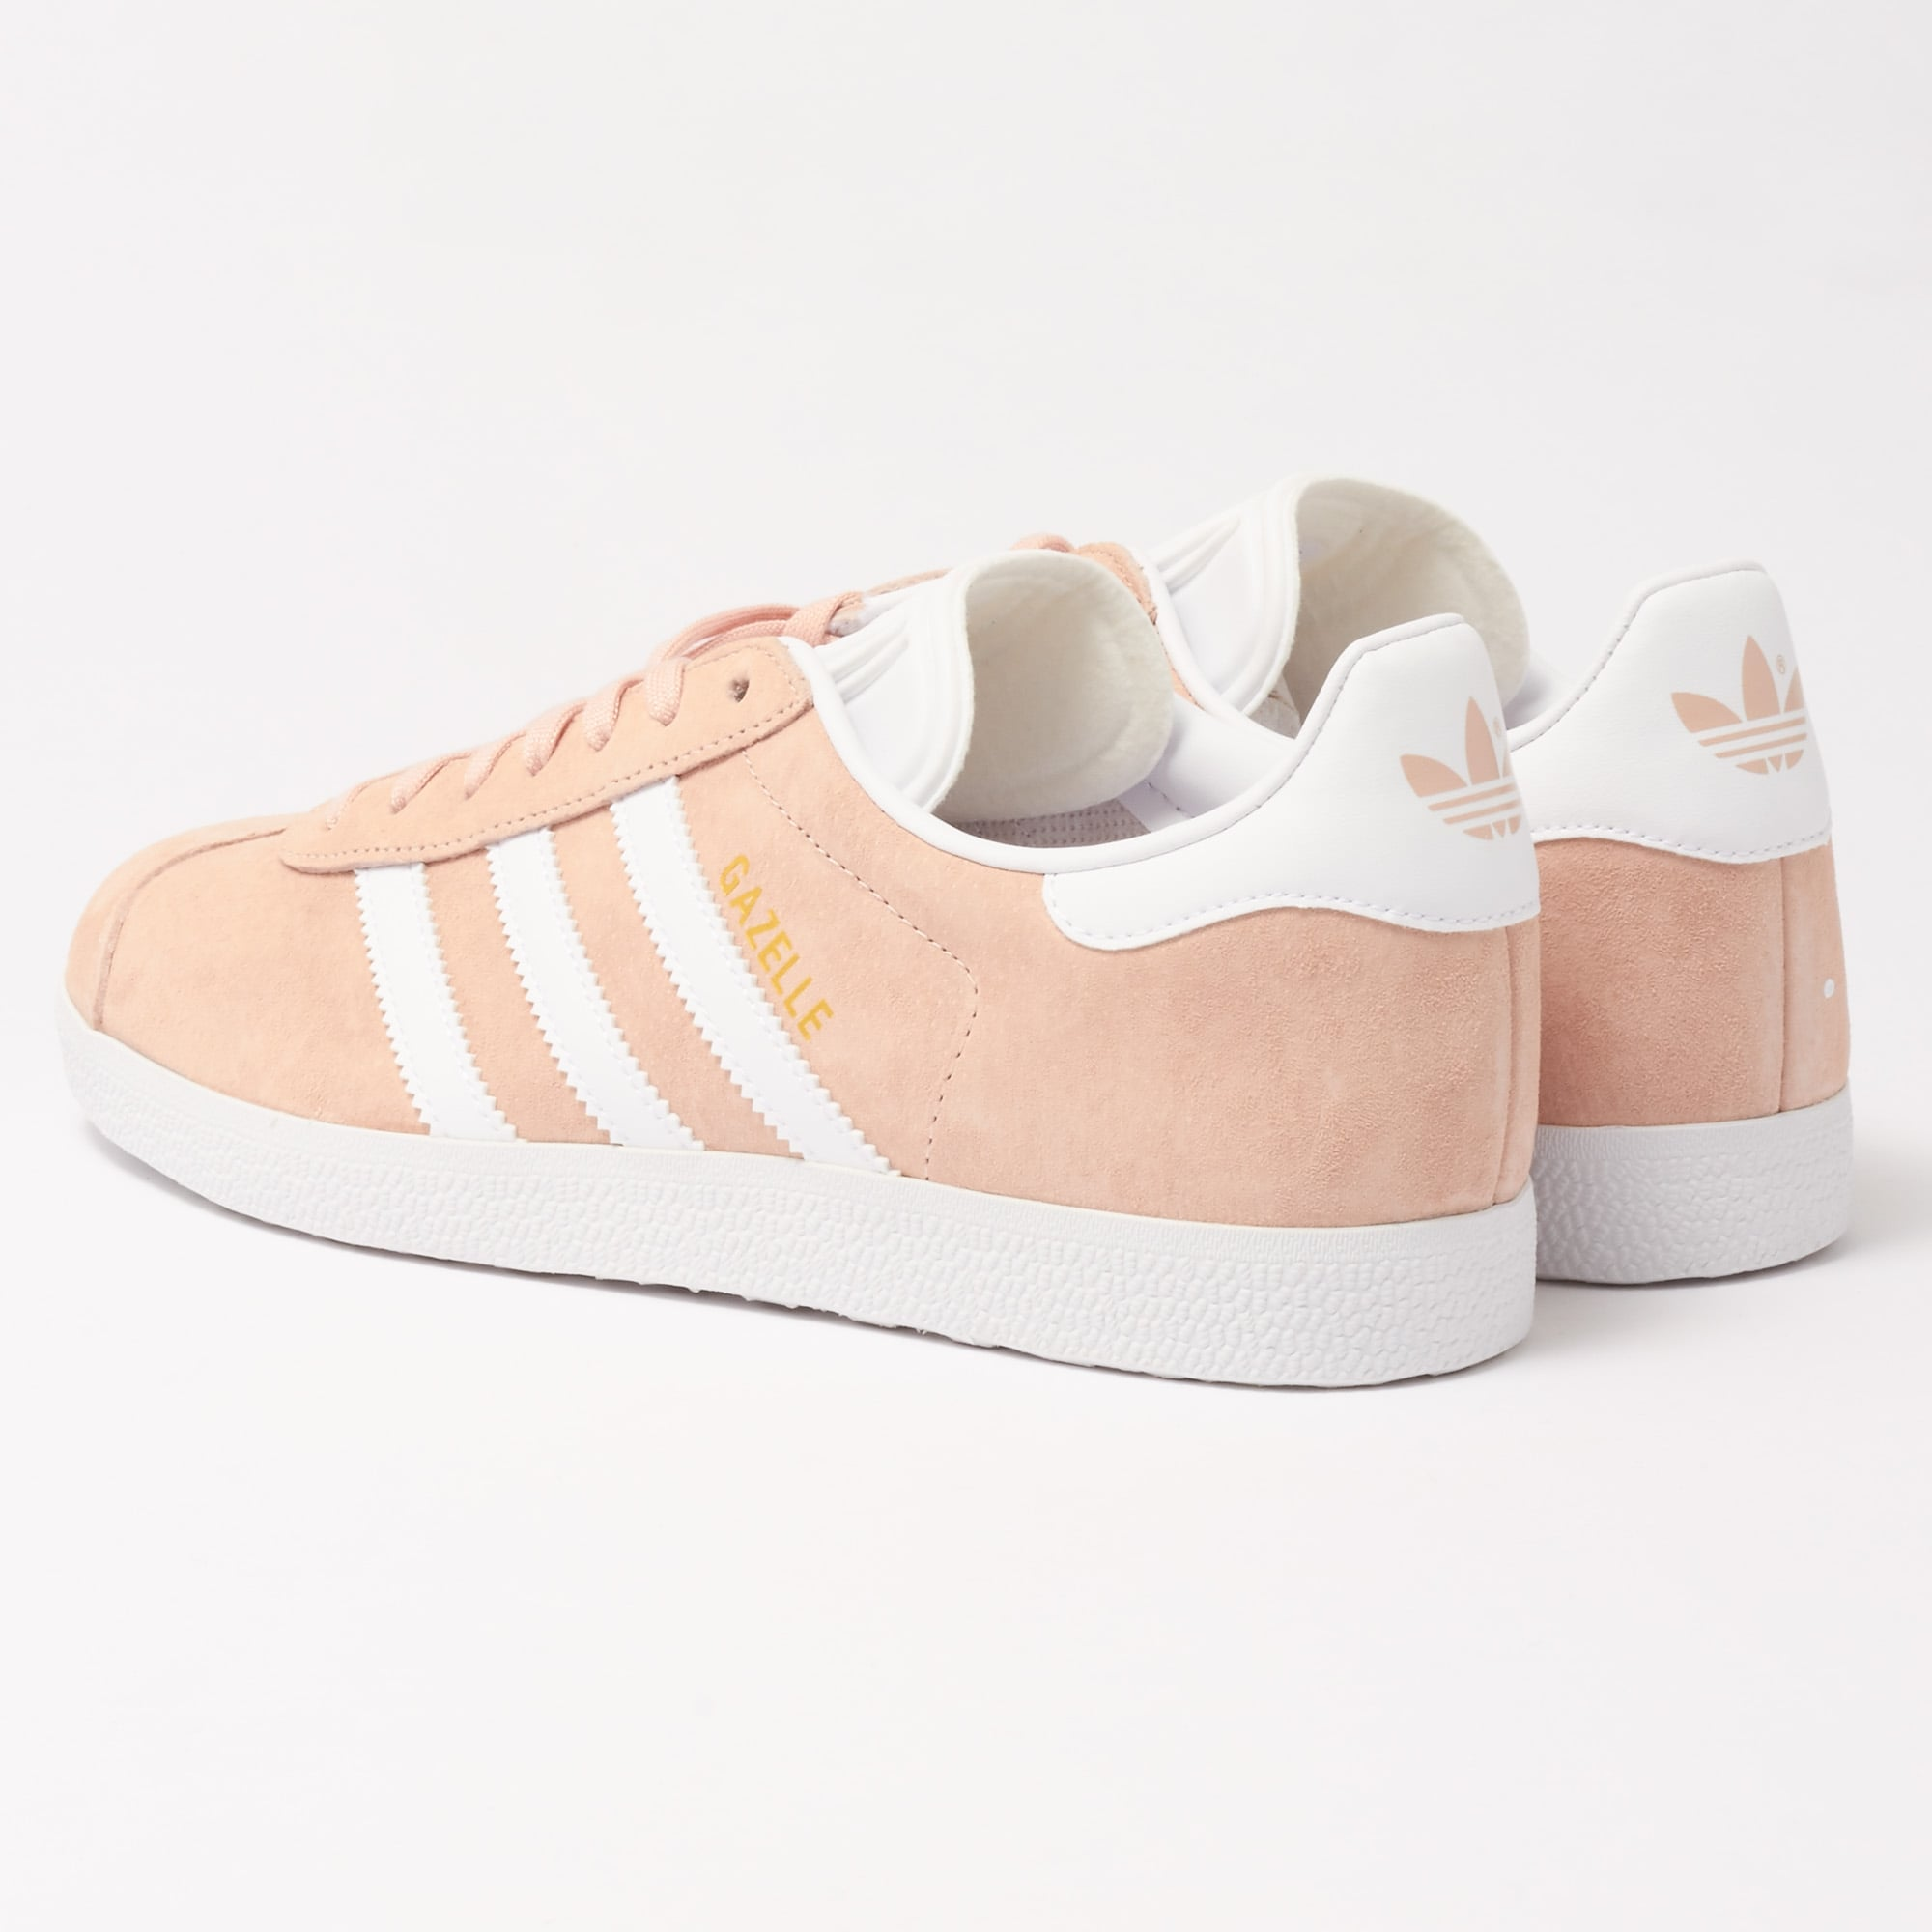 adidas originals london to manchester gazelle nz